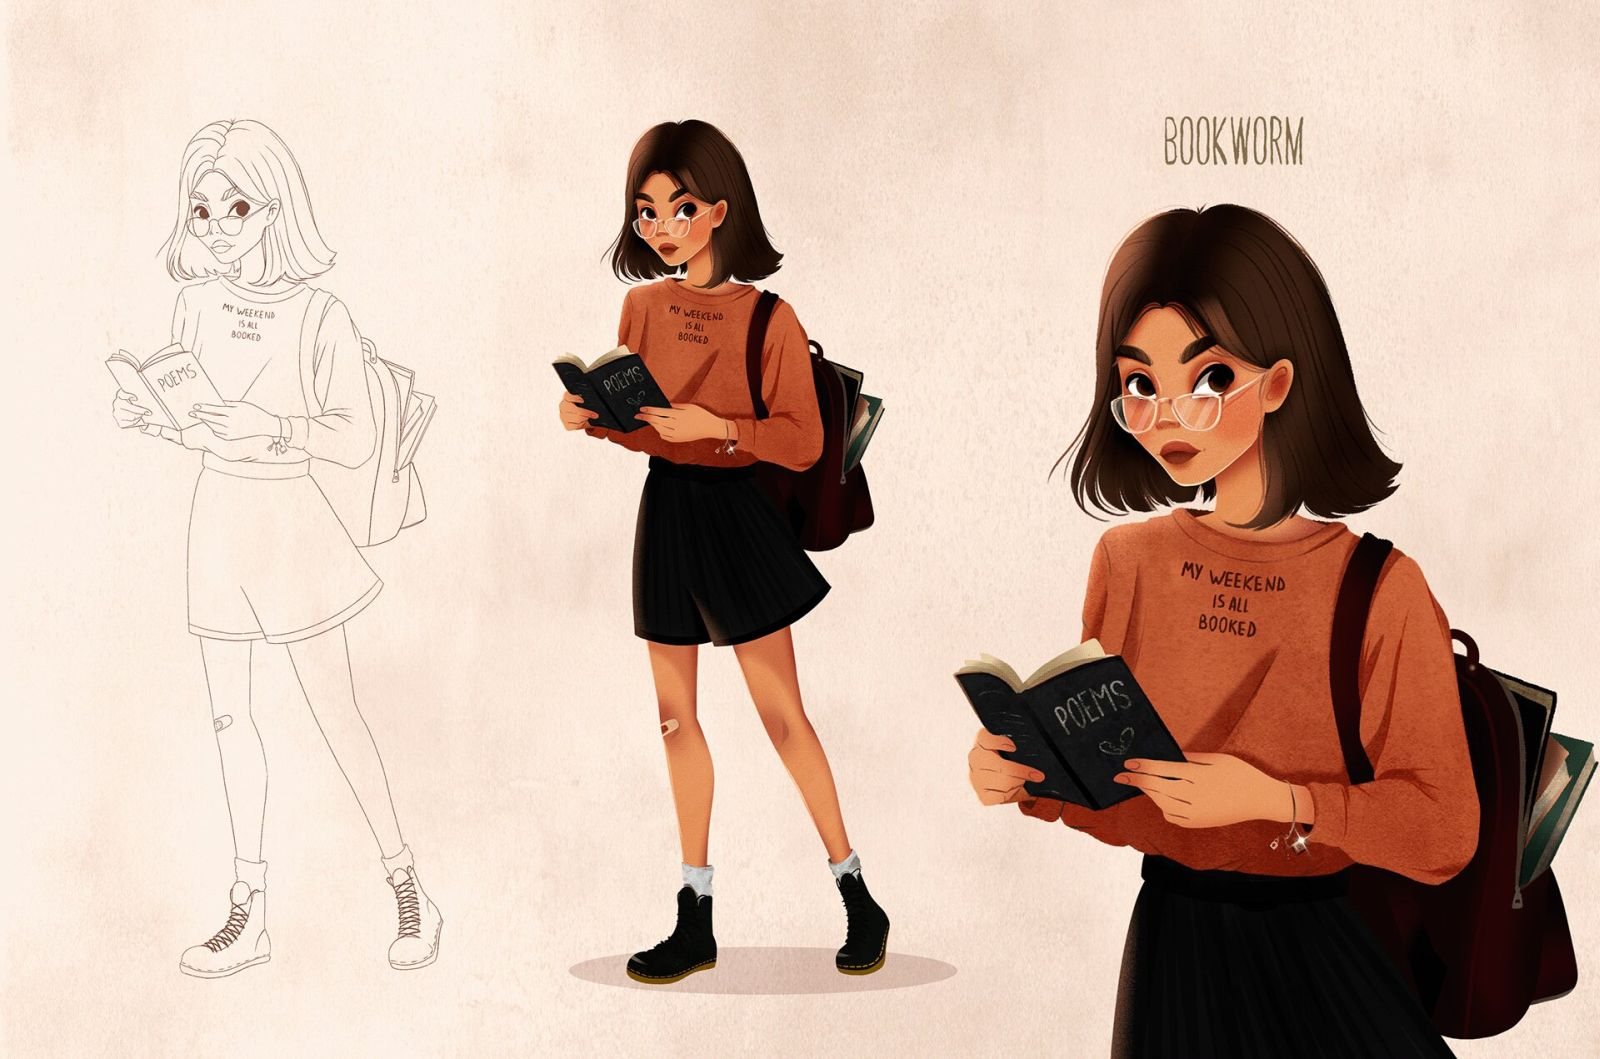 character design illustration book worm